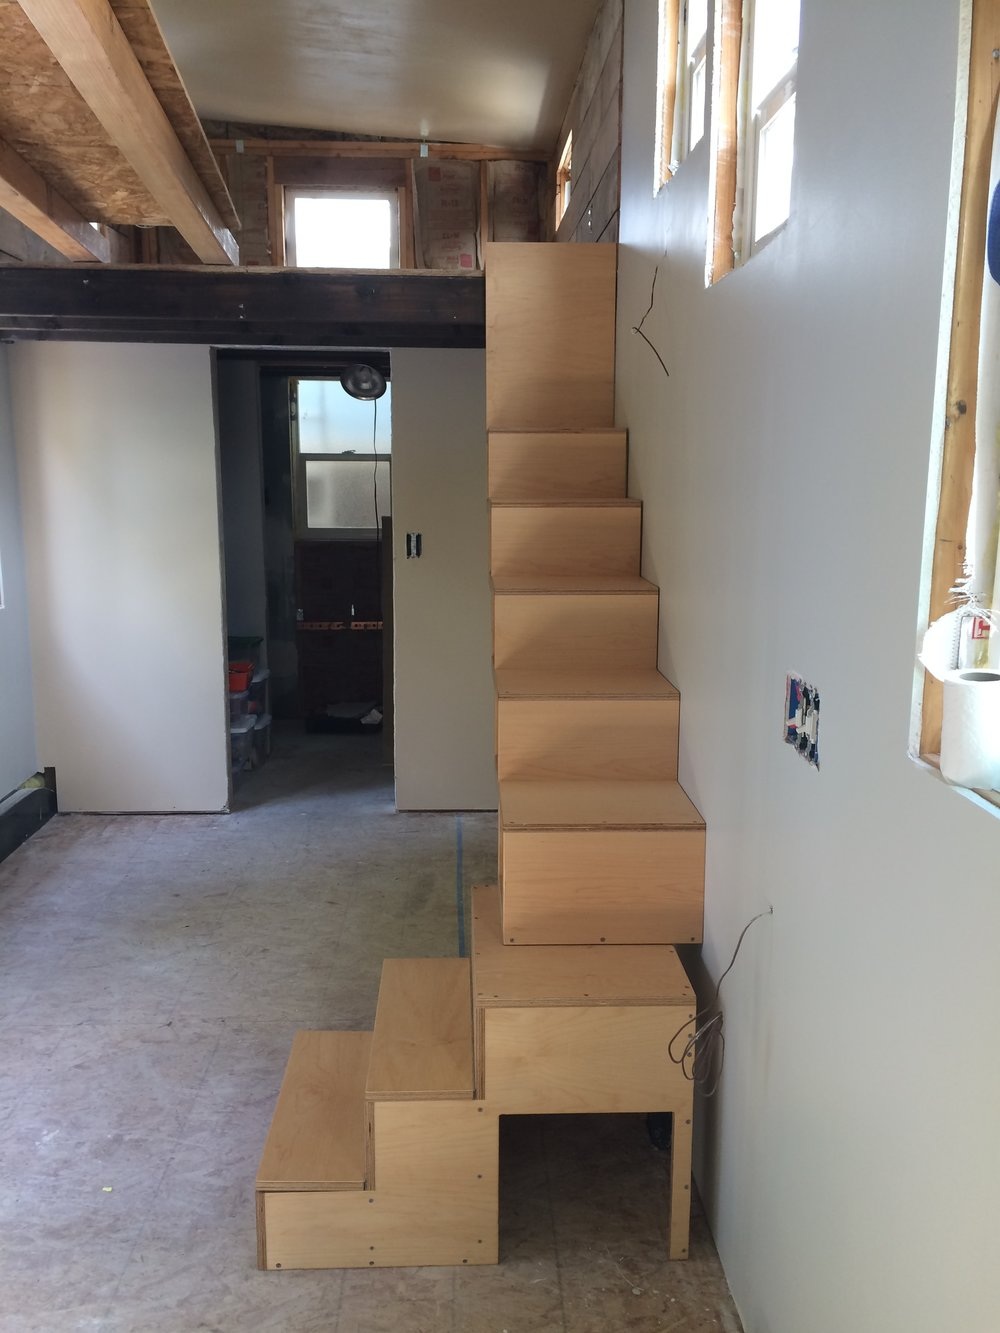 Tiny house stairs - side view.